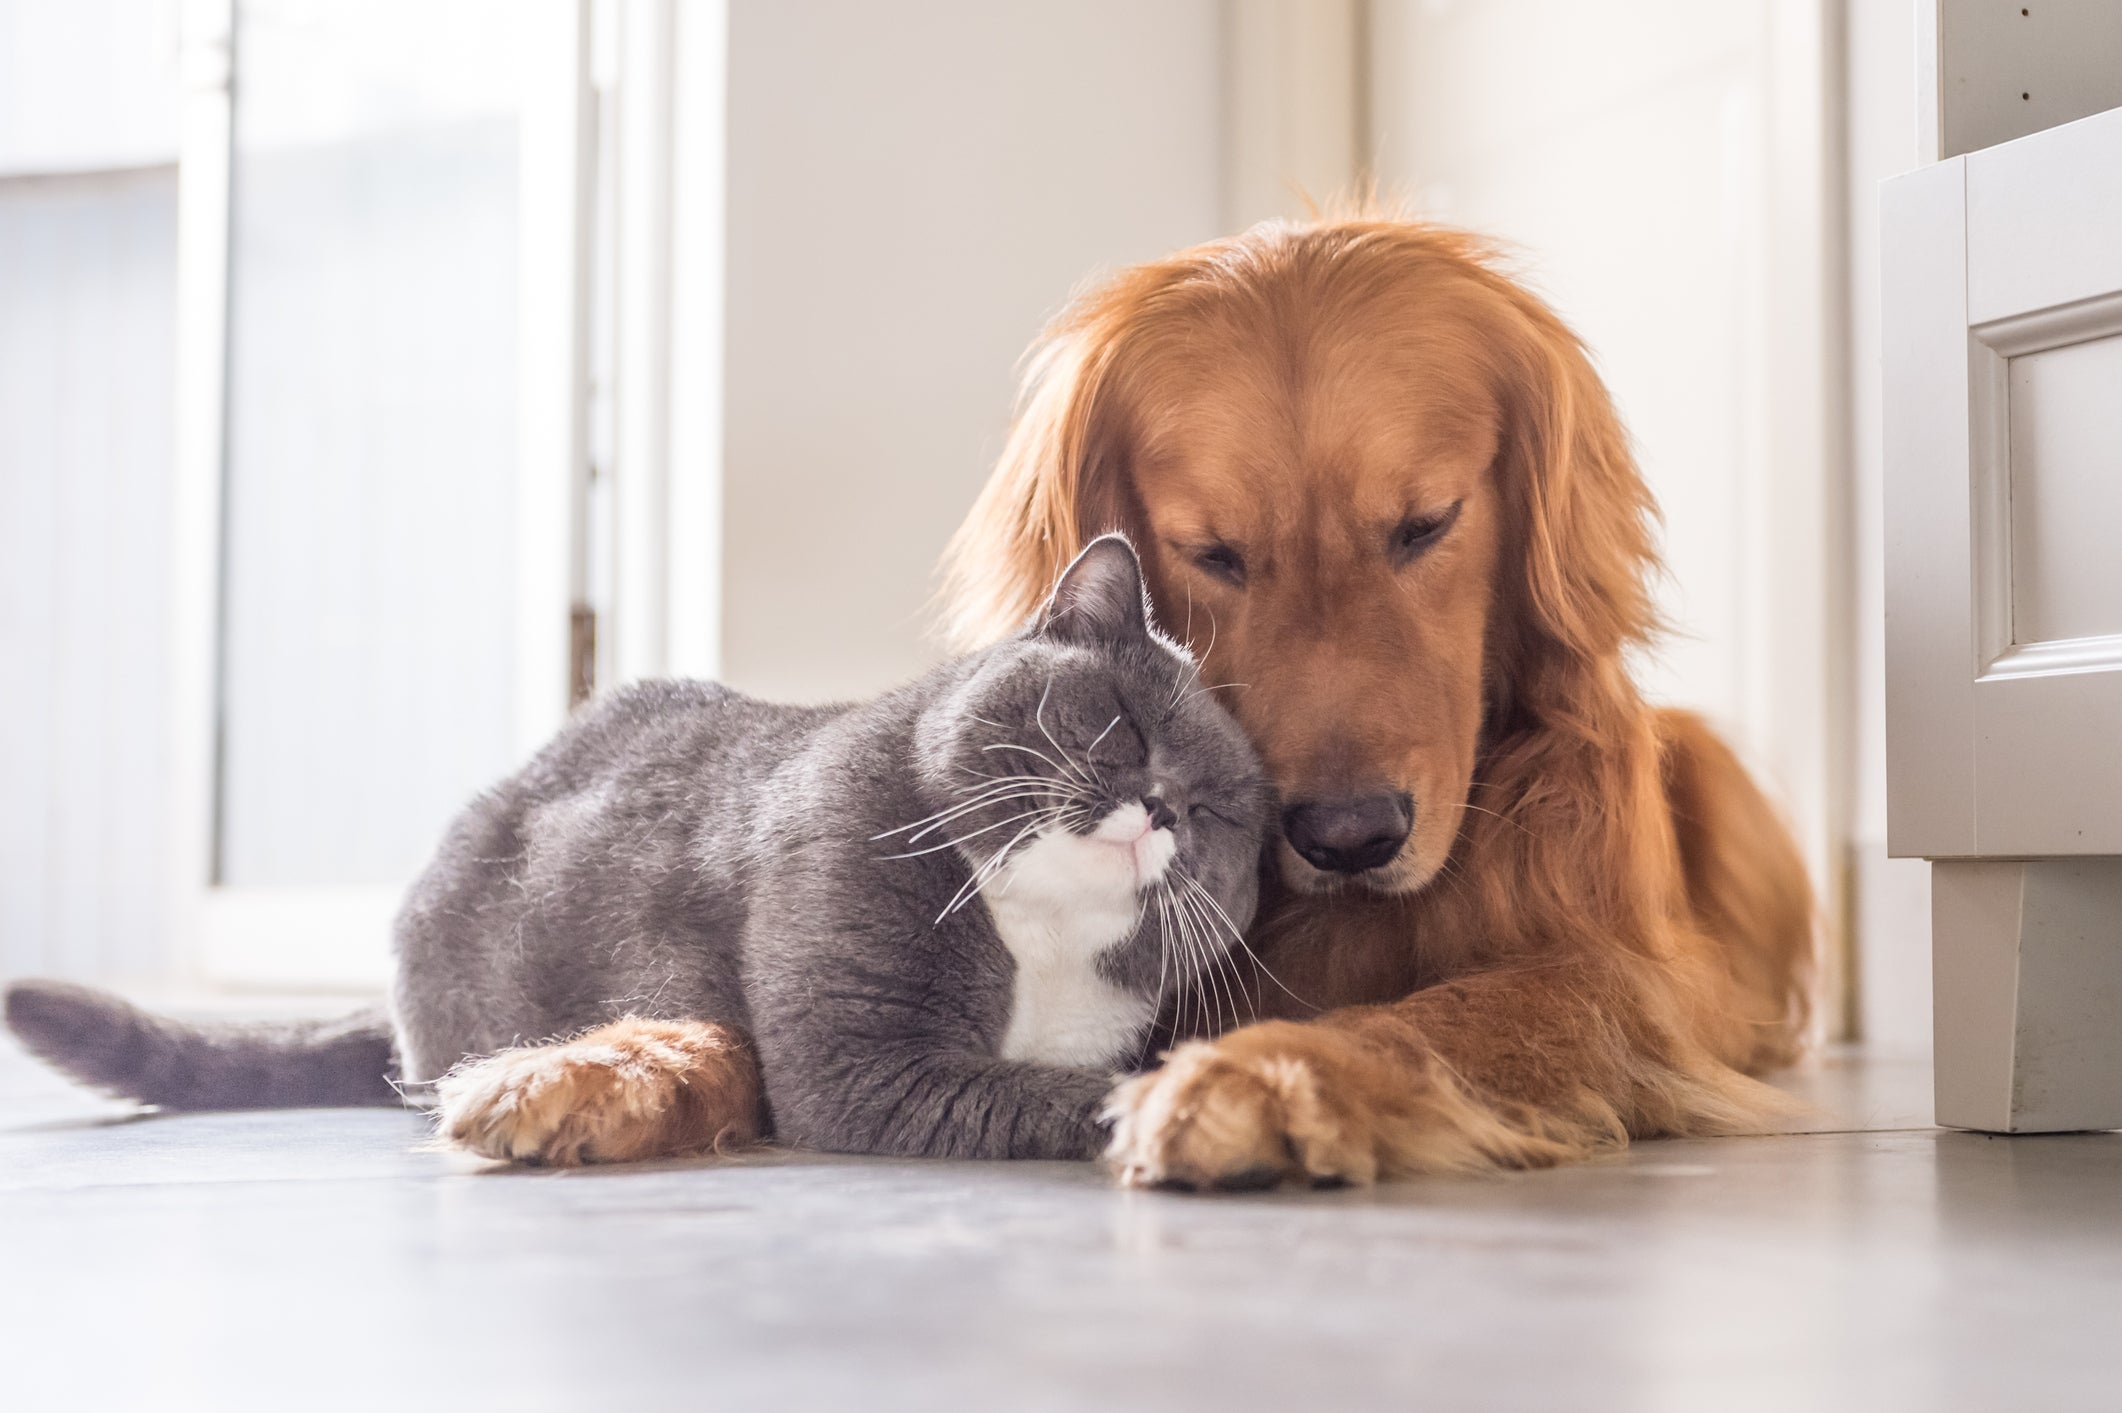 A cat and a dog nuzzling each other